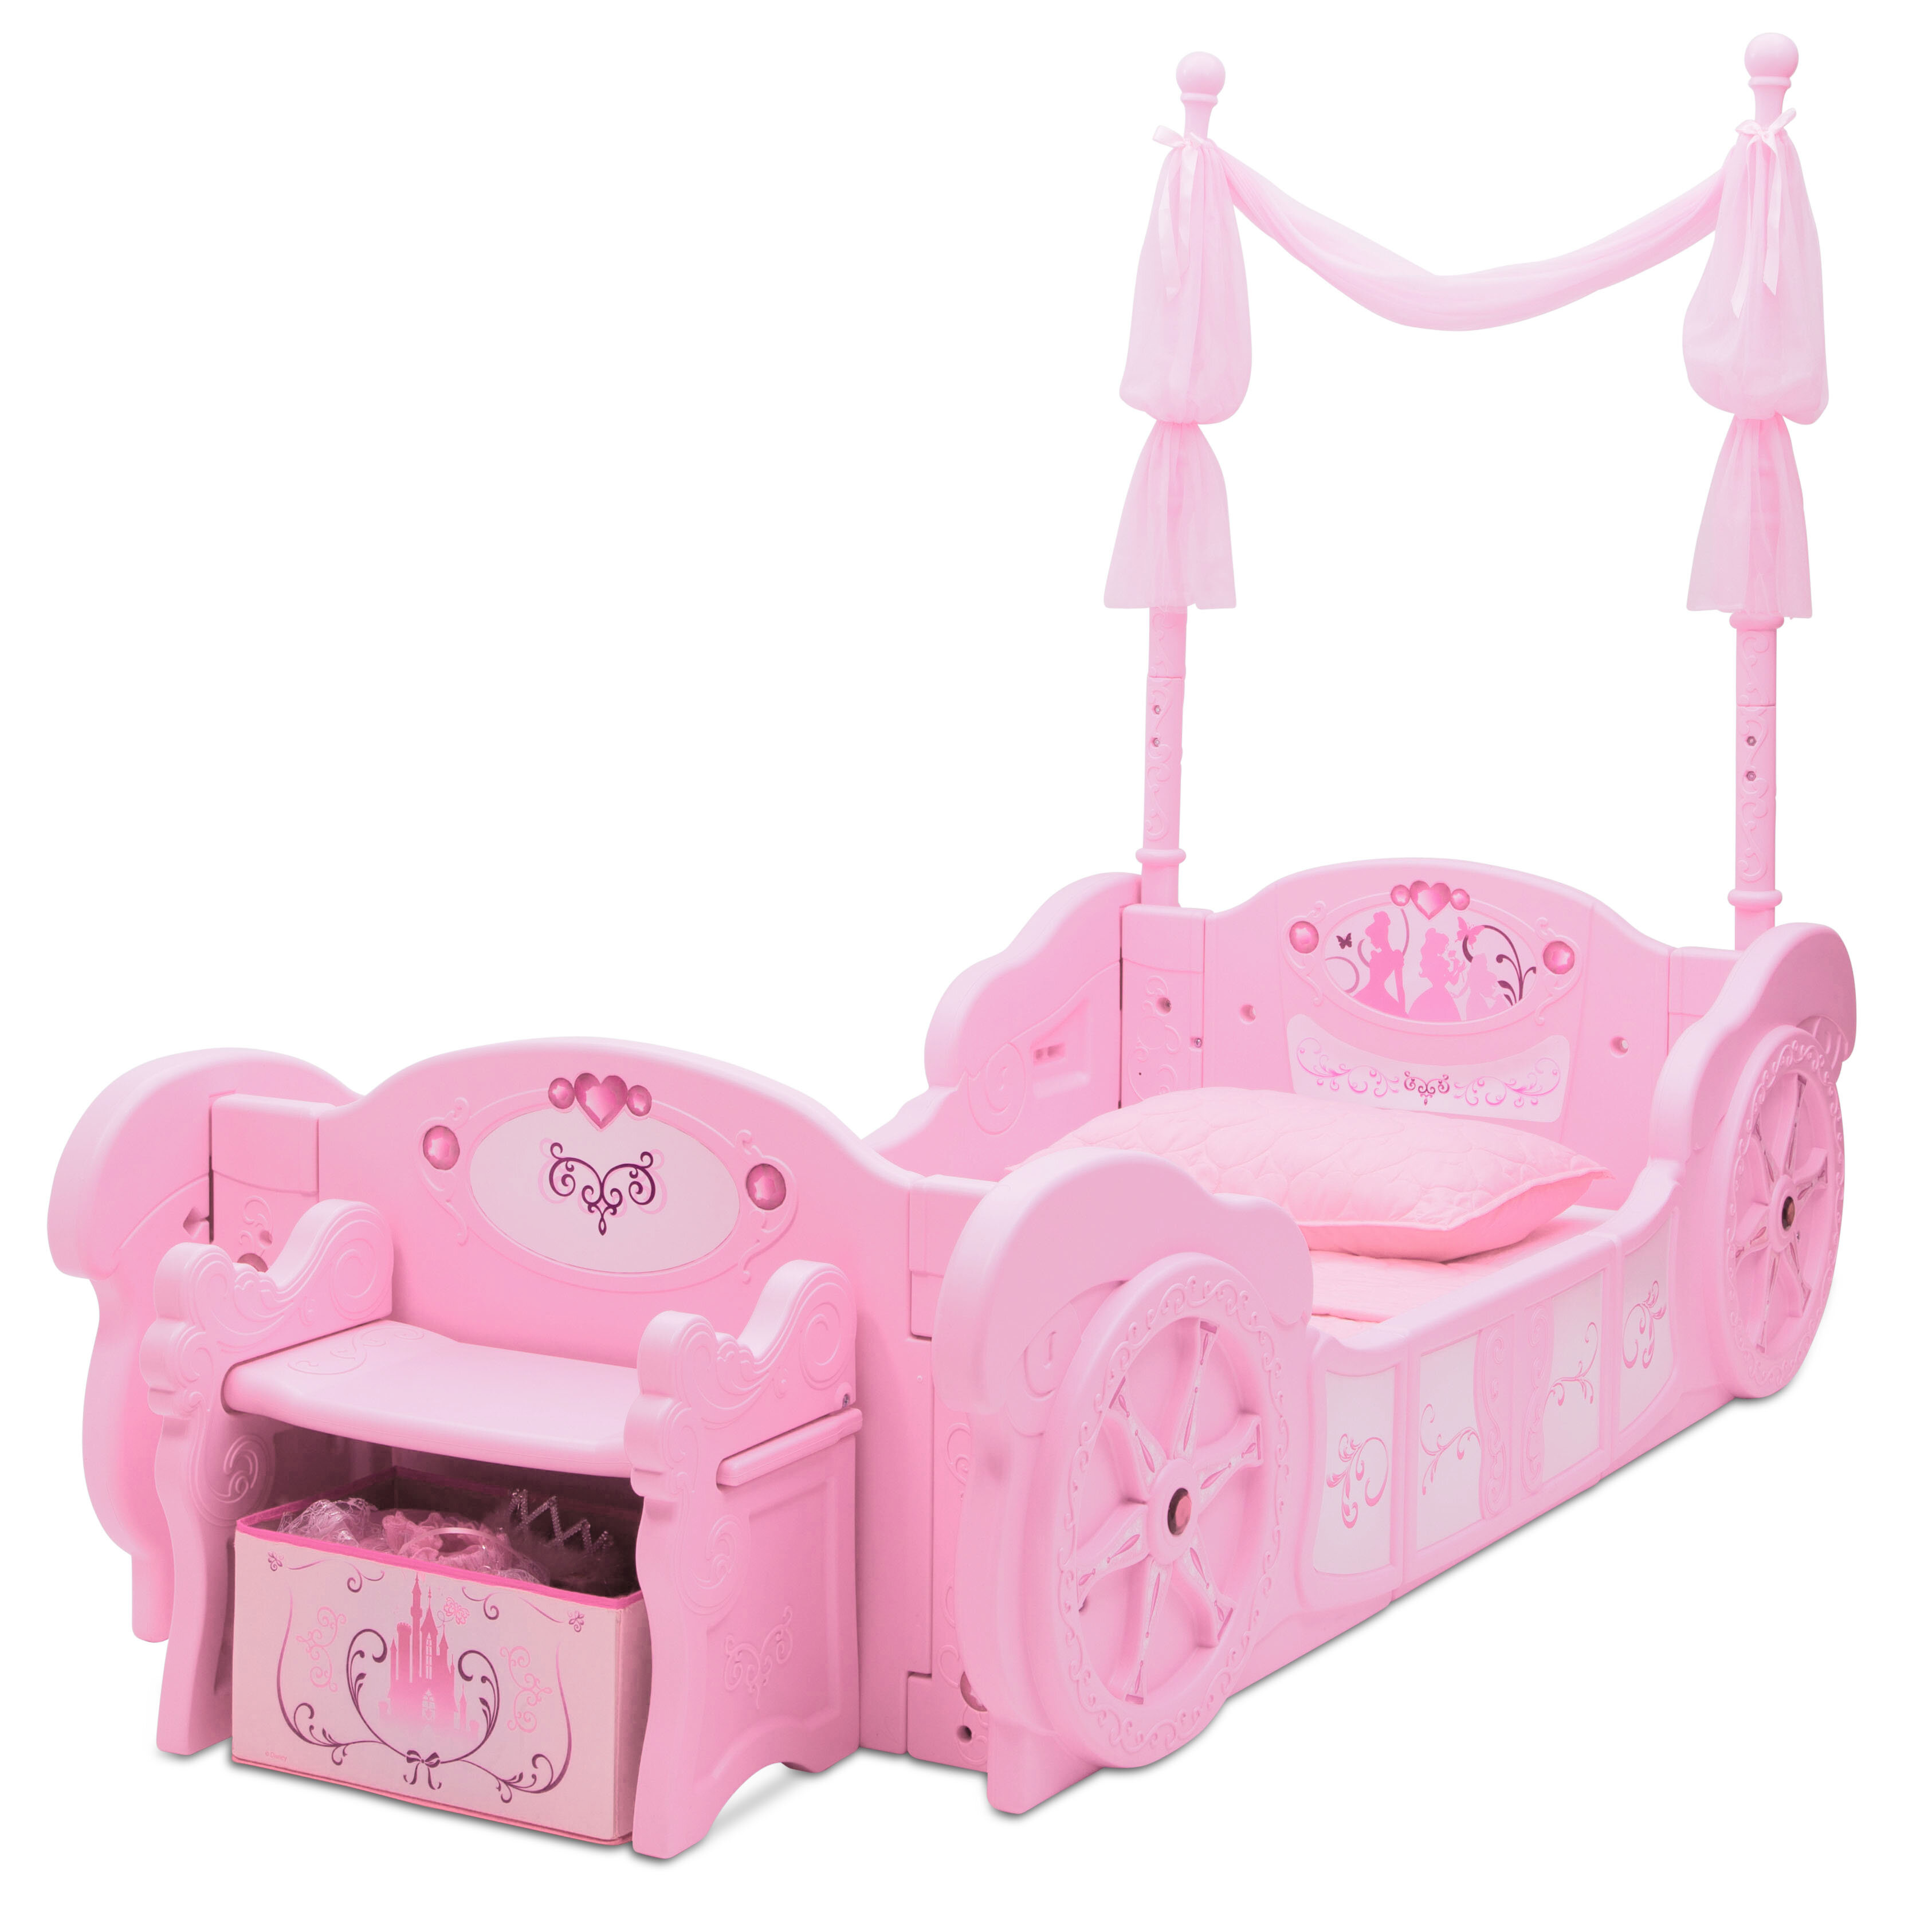 Disney Princess Carriage Twin Convertible Toddler Bed